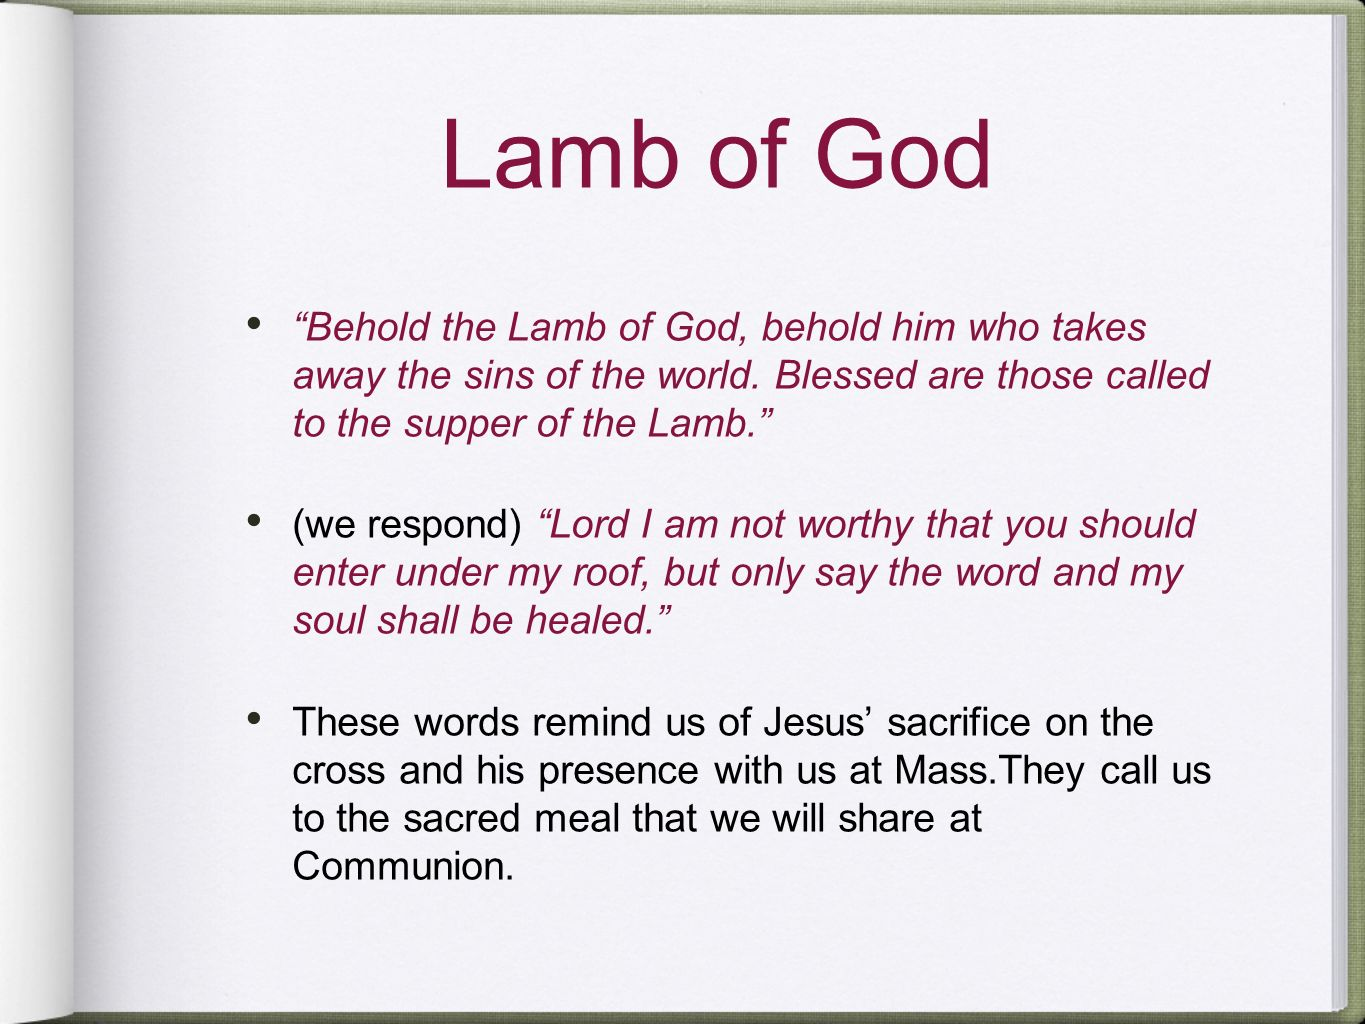 Lamb of God Behold the Lamb of God, behold him who takes away the sins of the world. Blessed are those called to the supper of the Lamb.